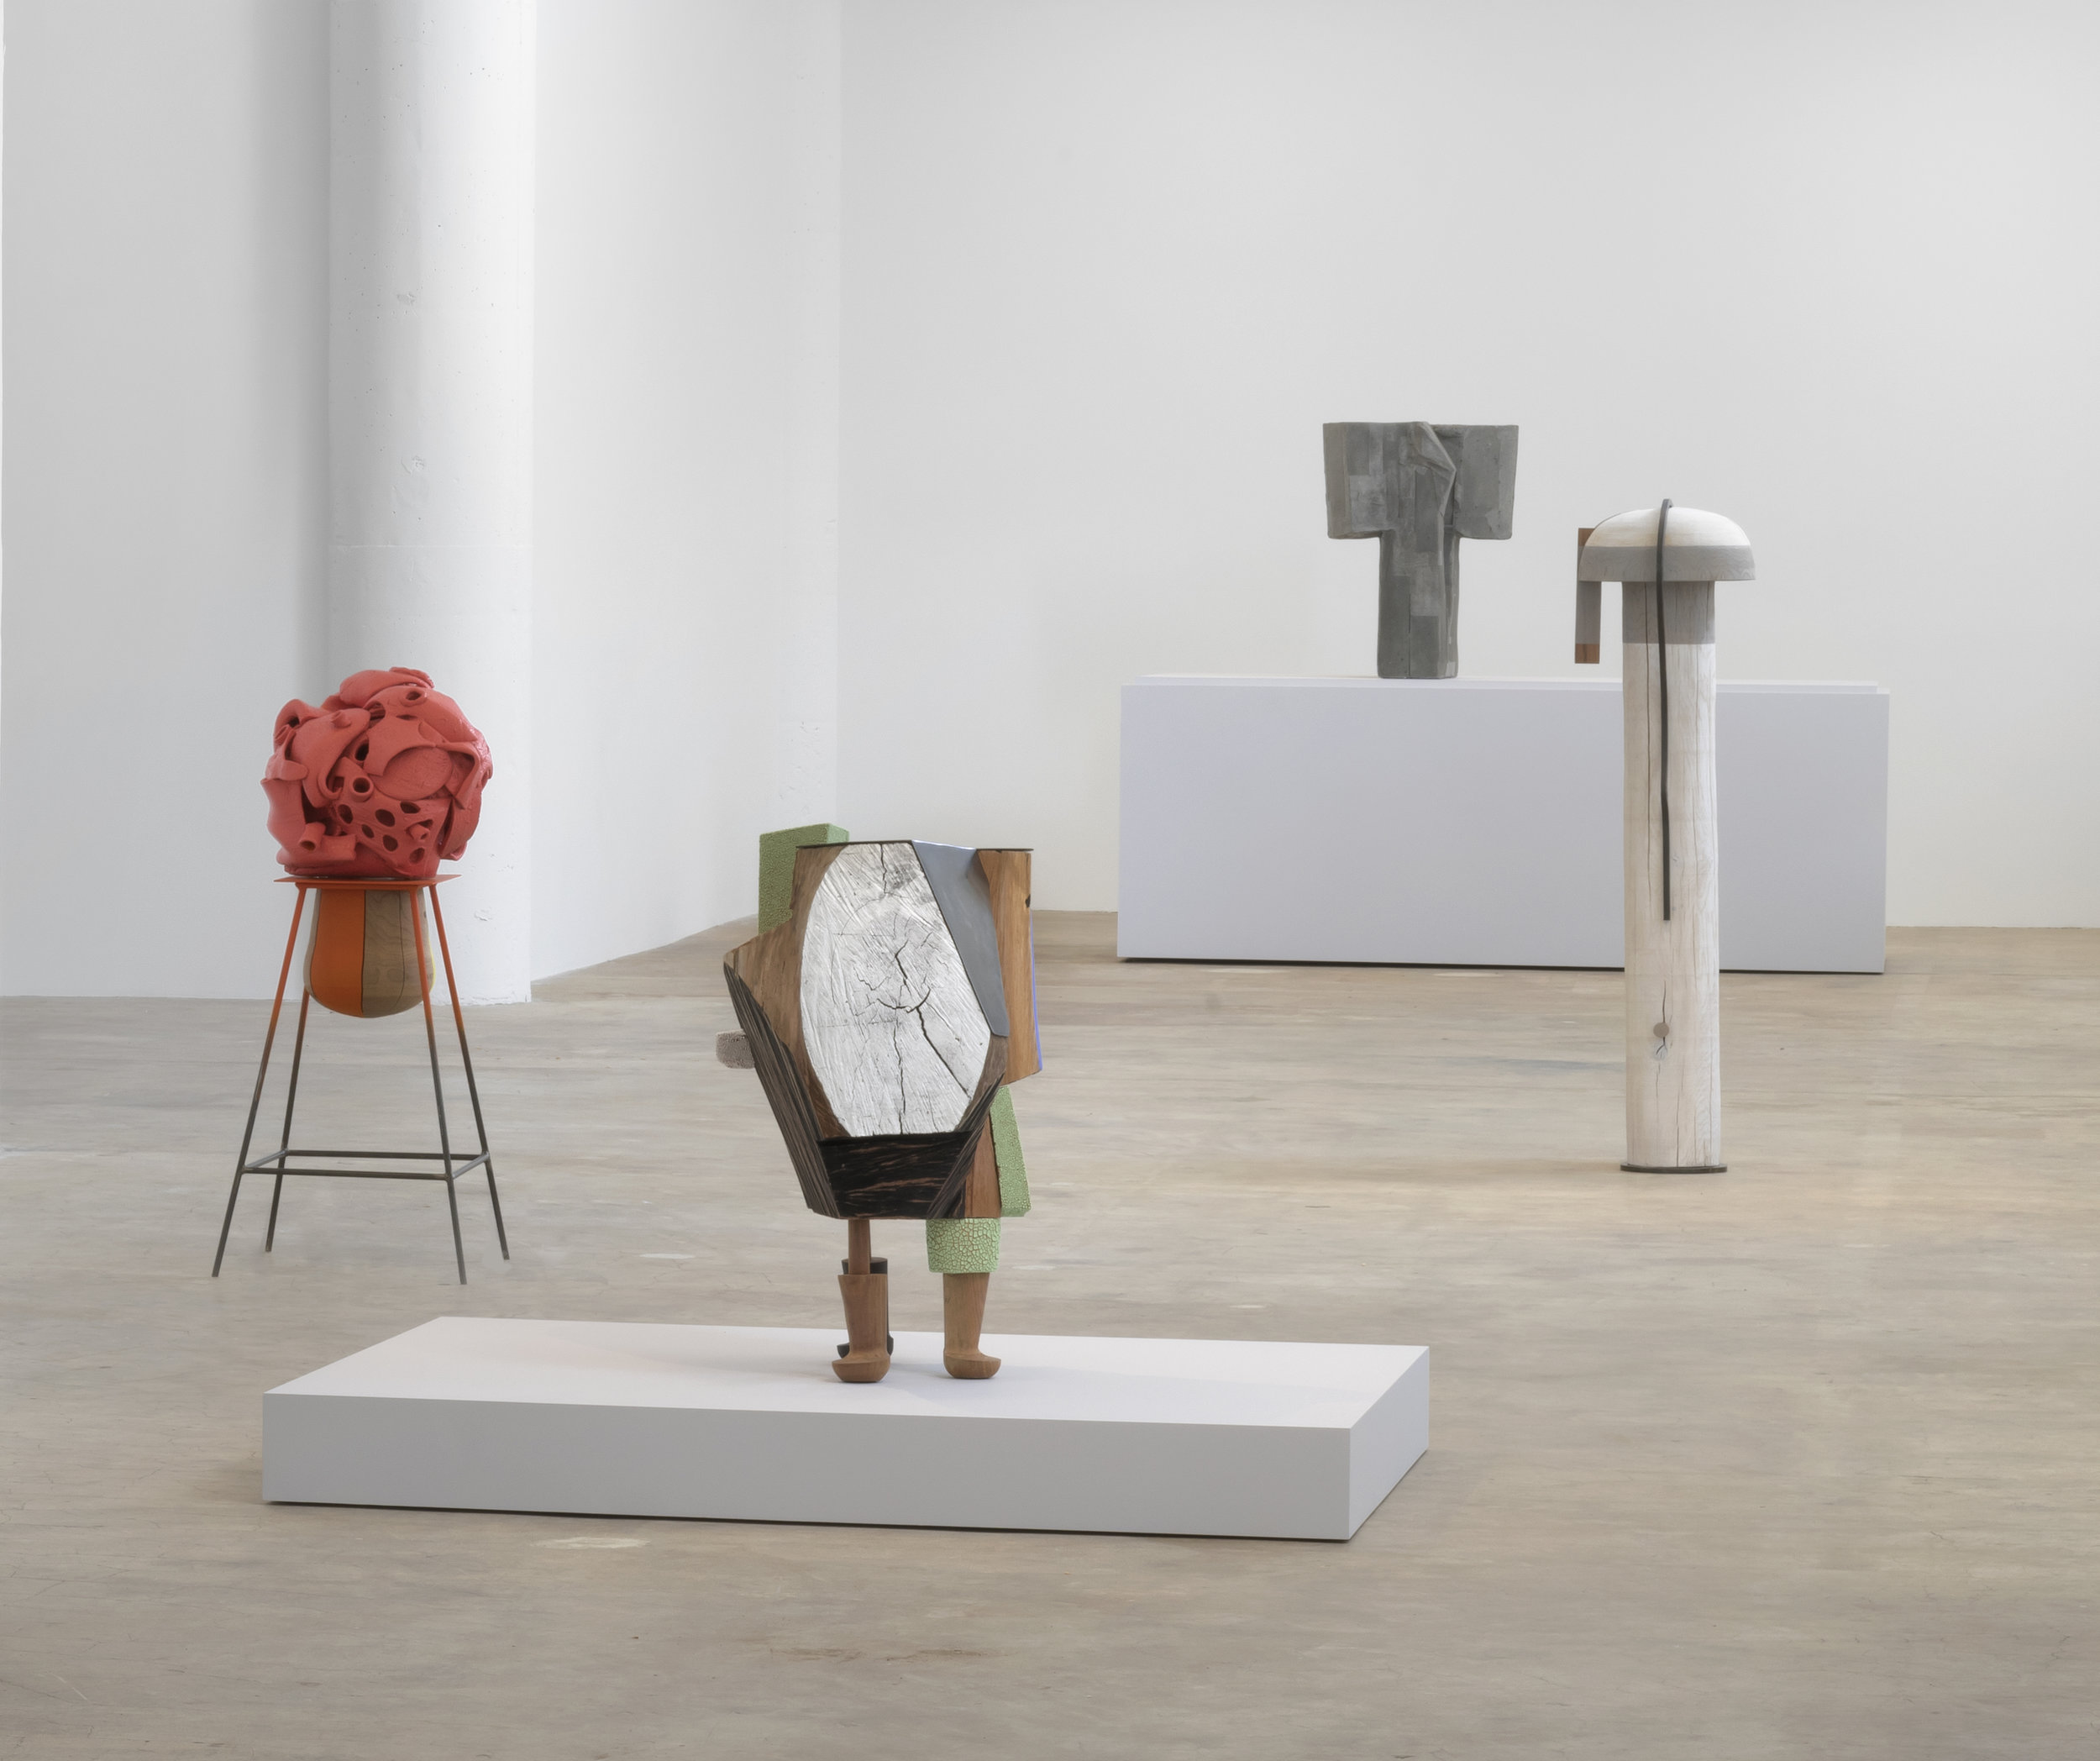 Installation view,  Arlene Shechet: Sculpture , Vielmetter Los Angeles, CA, Apr 6 - June 8, 2019.